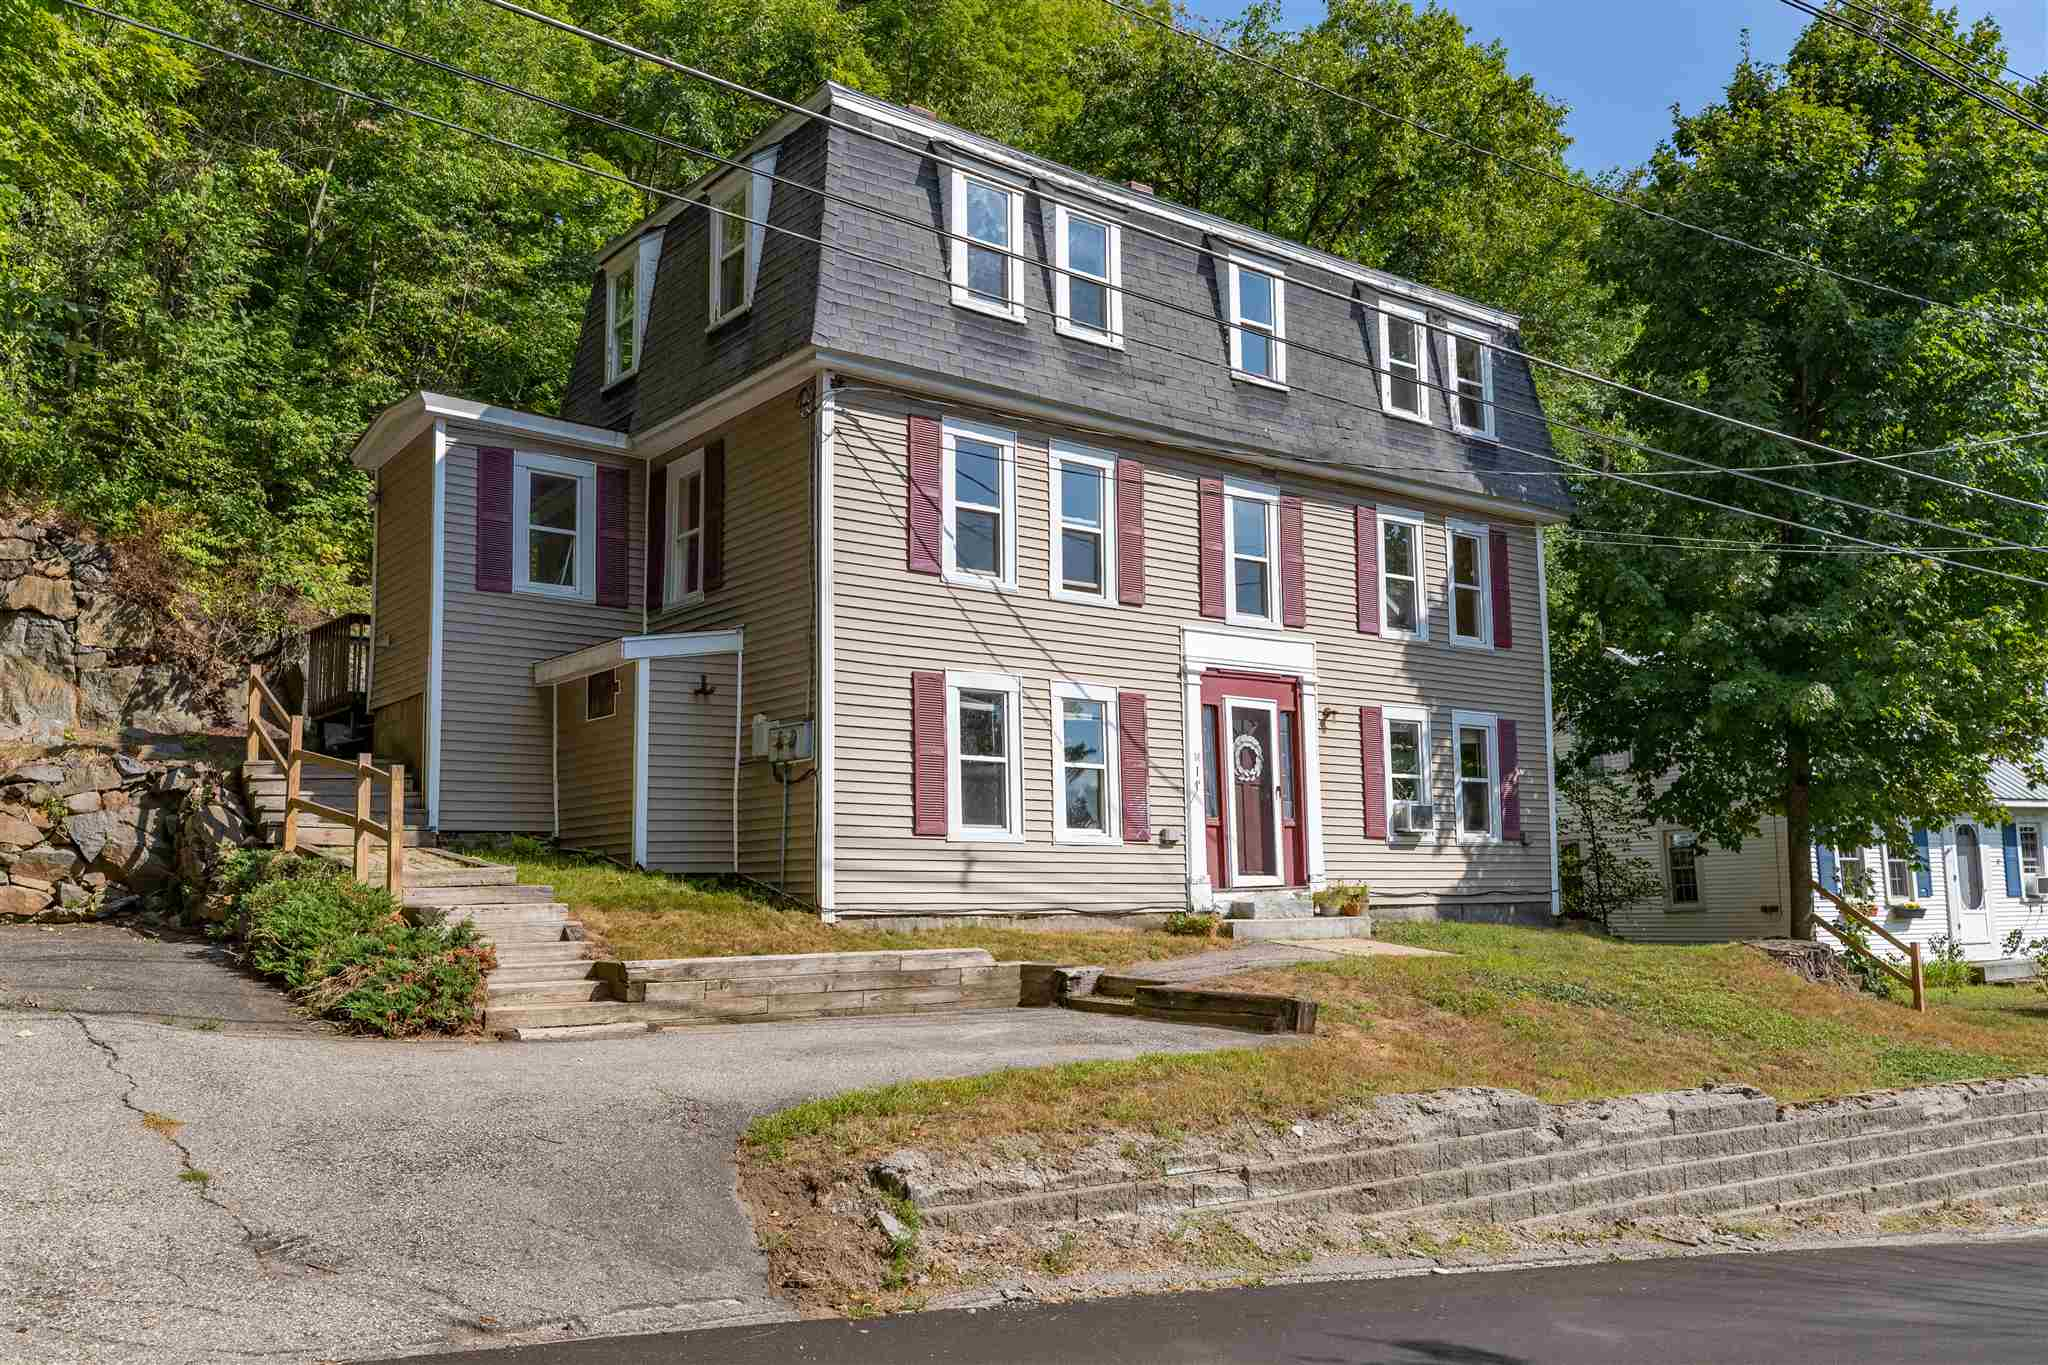 MLS 4826874: 14 Thompson Street, Ashland NH